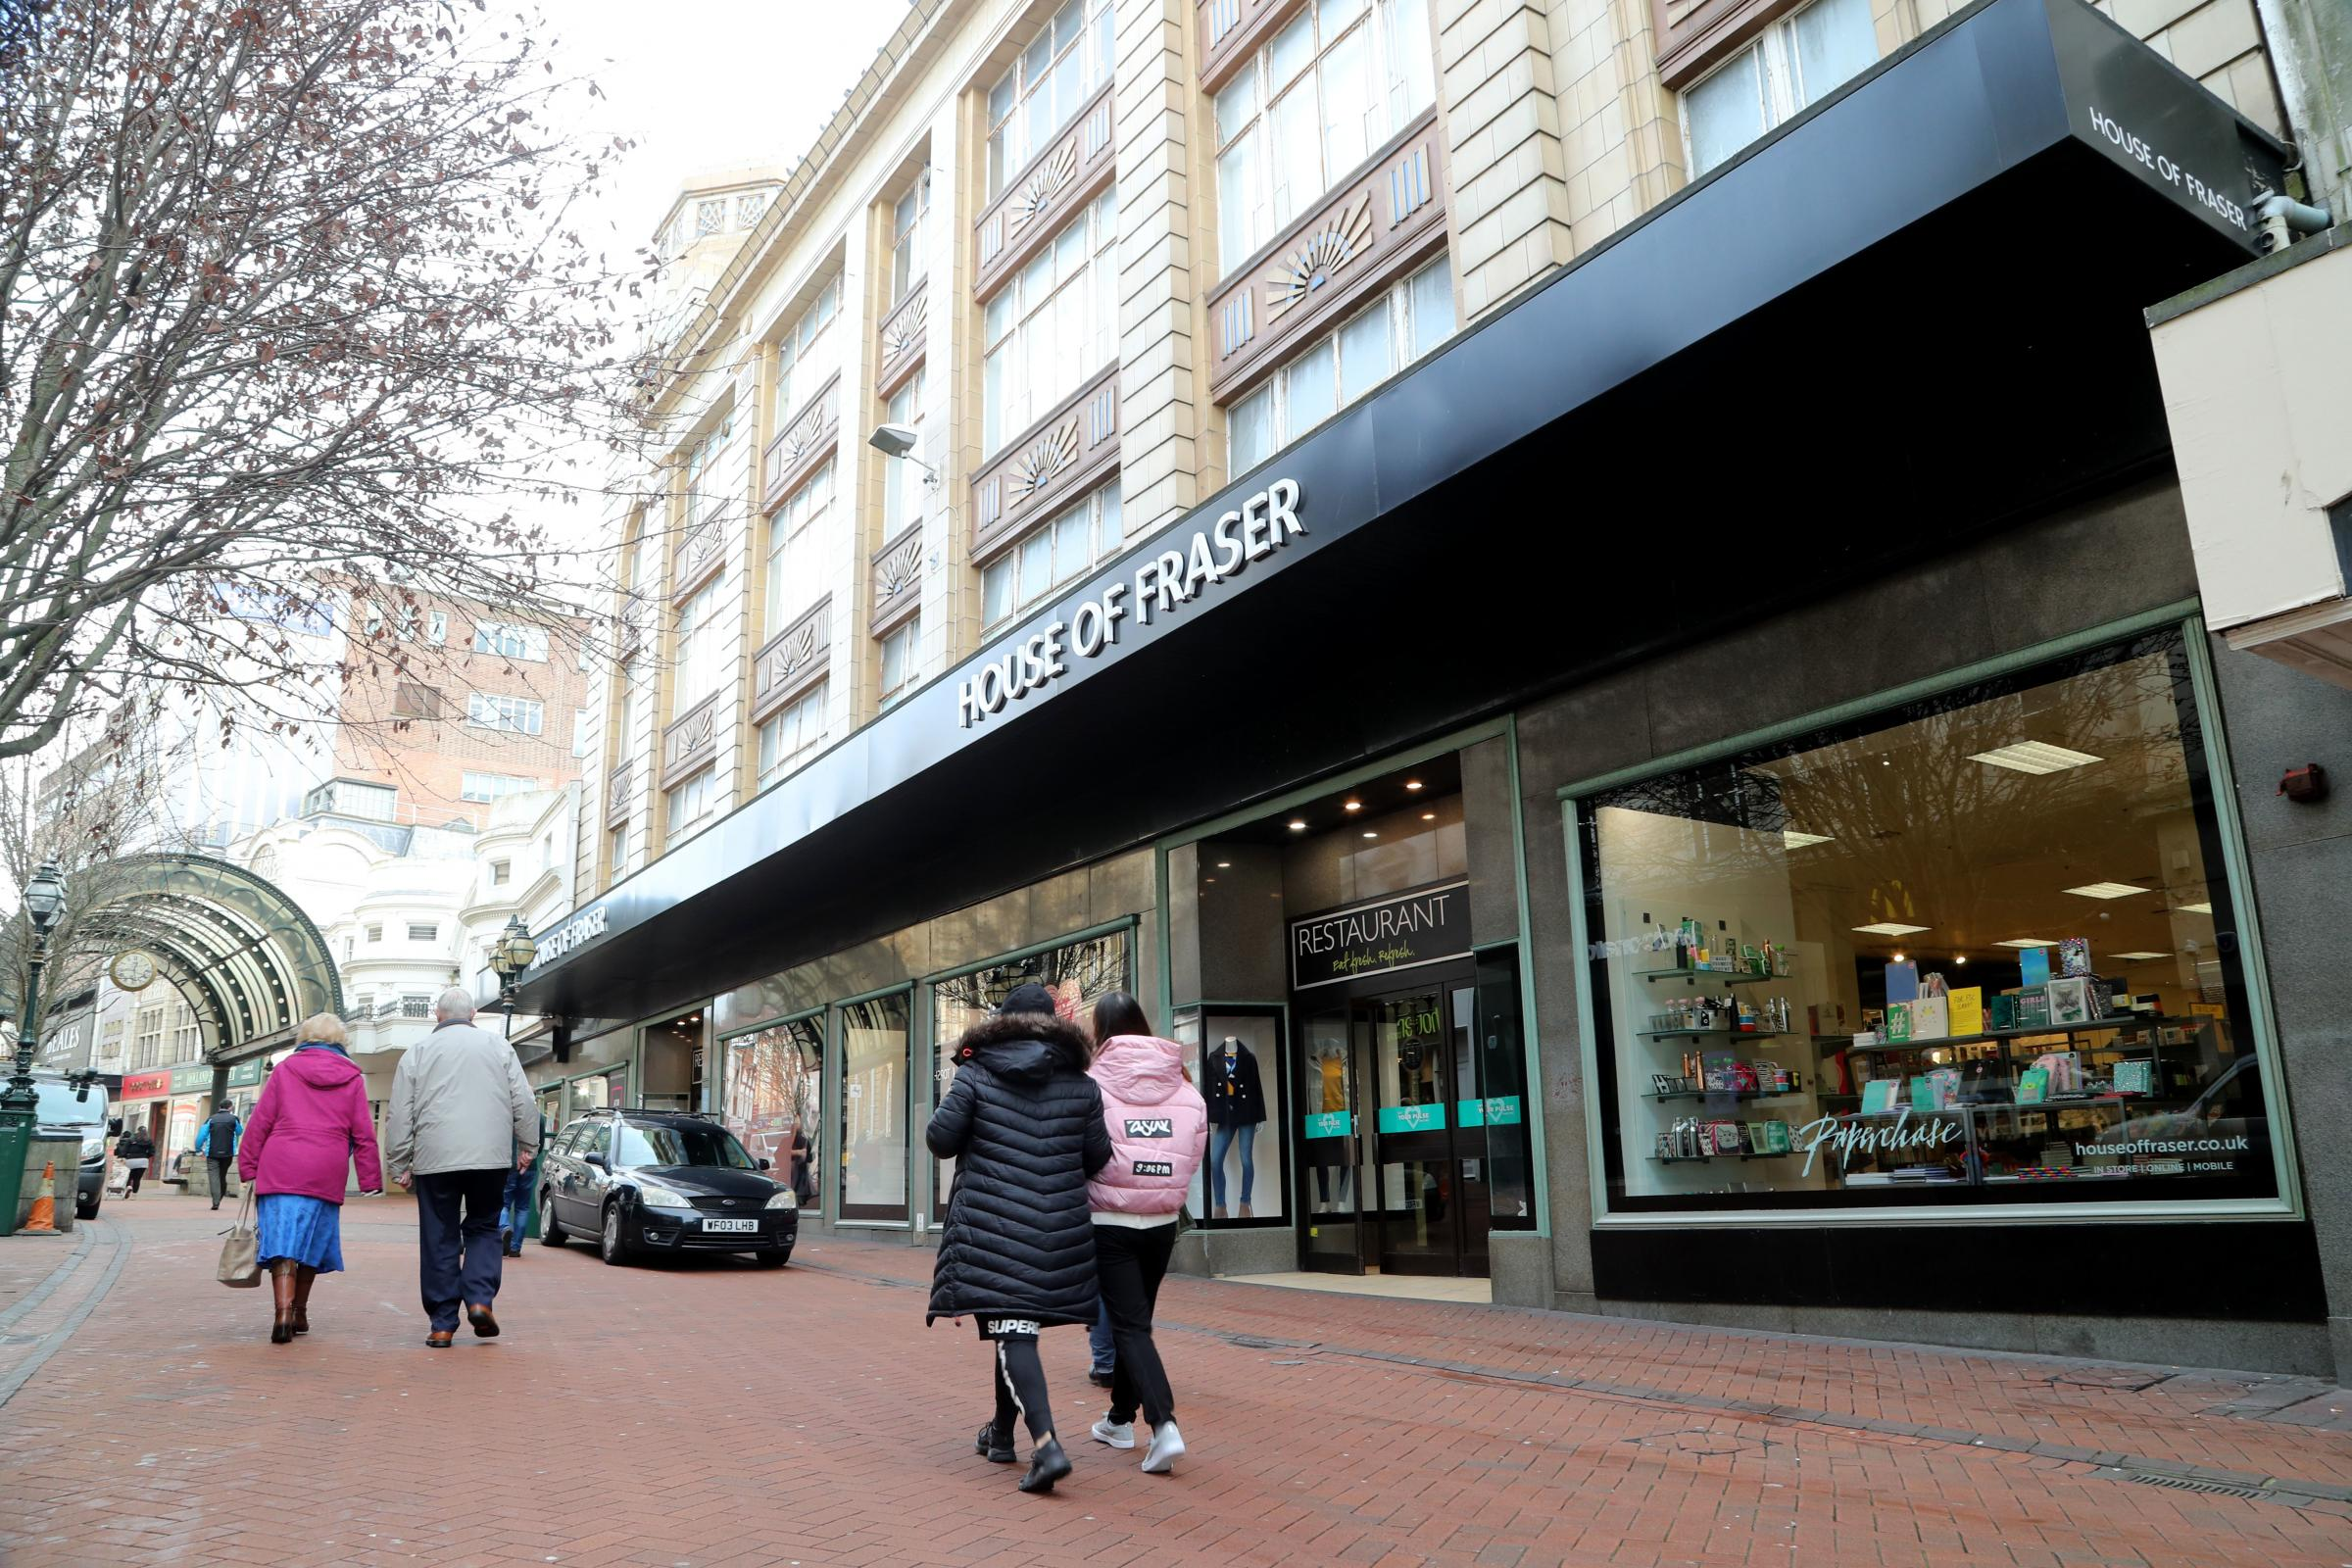 House of Fraser owner is latest retailer to plead for business rates cut